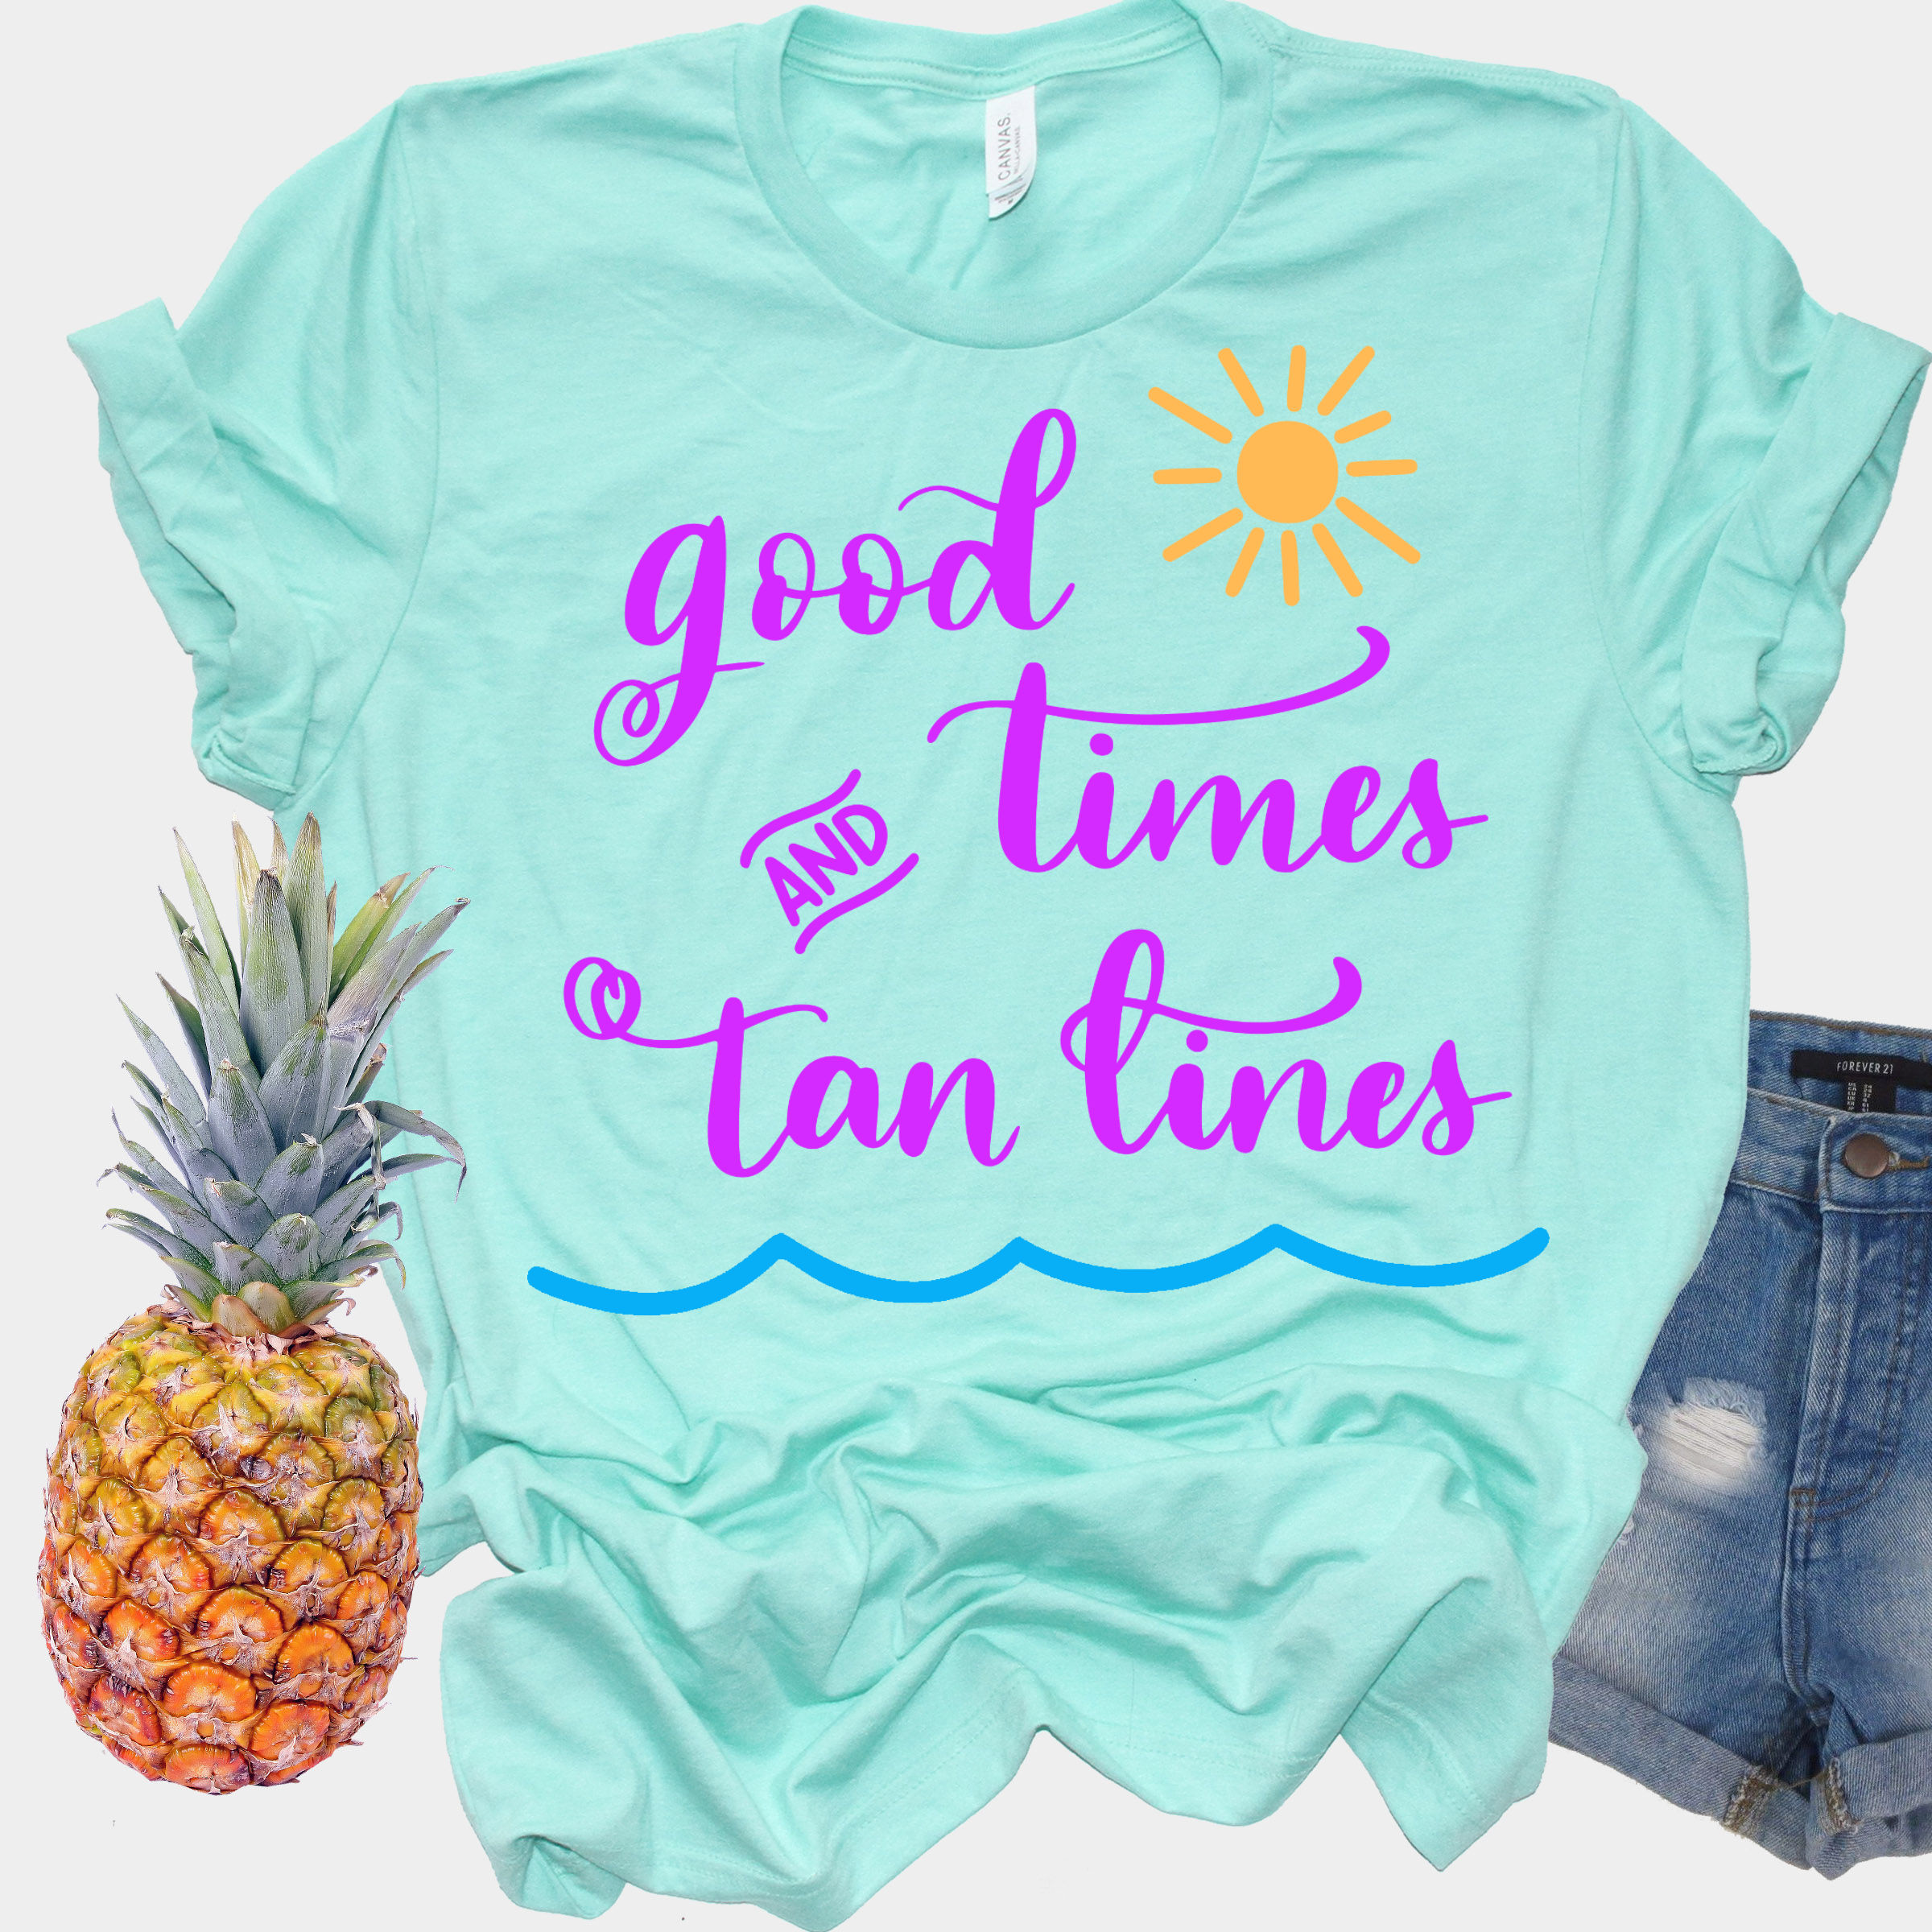 Good Times and Tan Lines SVG - Summer SVG - Vacation SVG example image 3